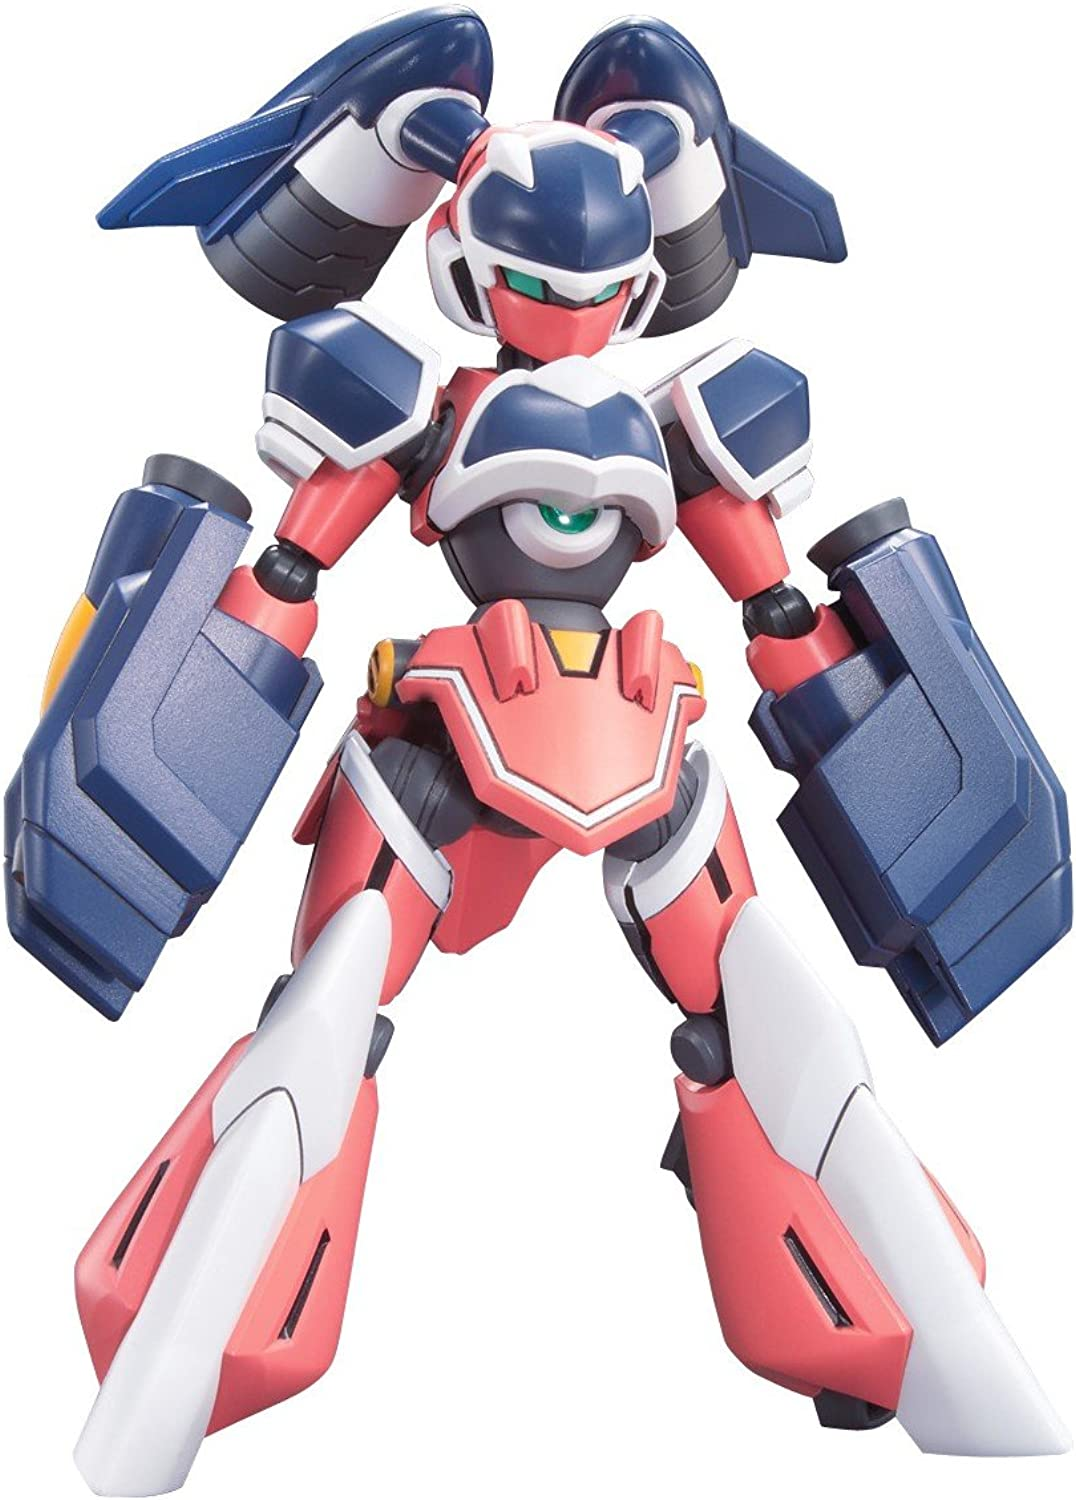 The Little Battlers eXperience W 032 LBX Minerva Kai  Plastic Model Construction Kit